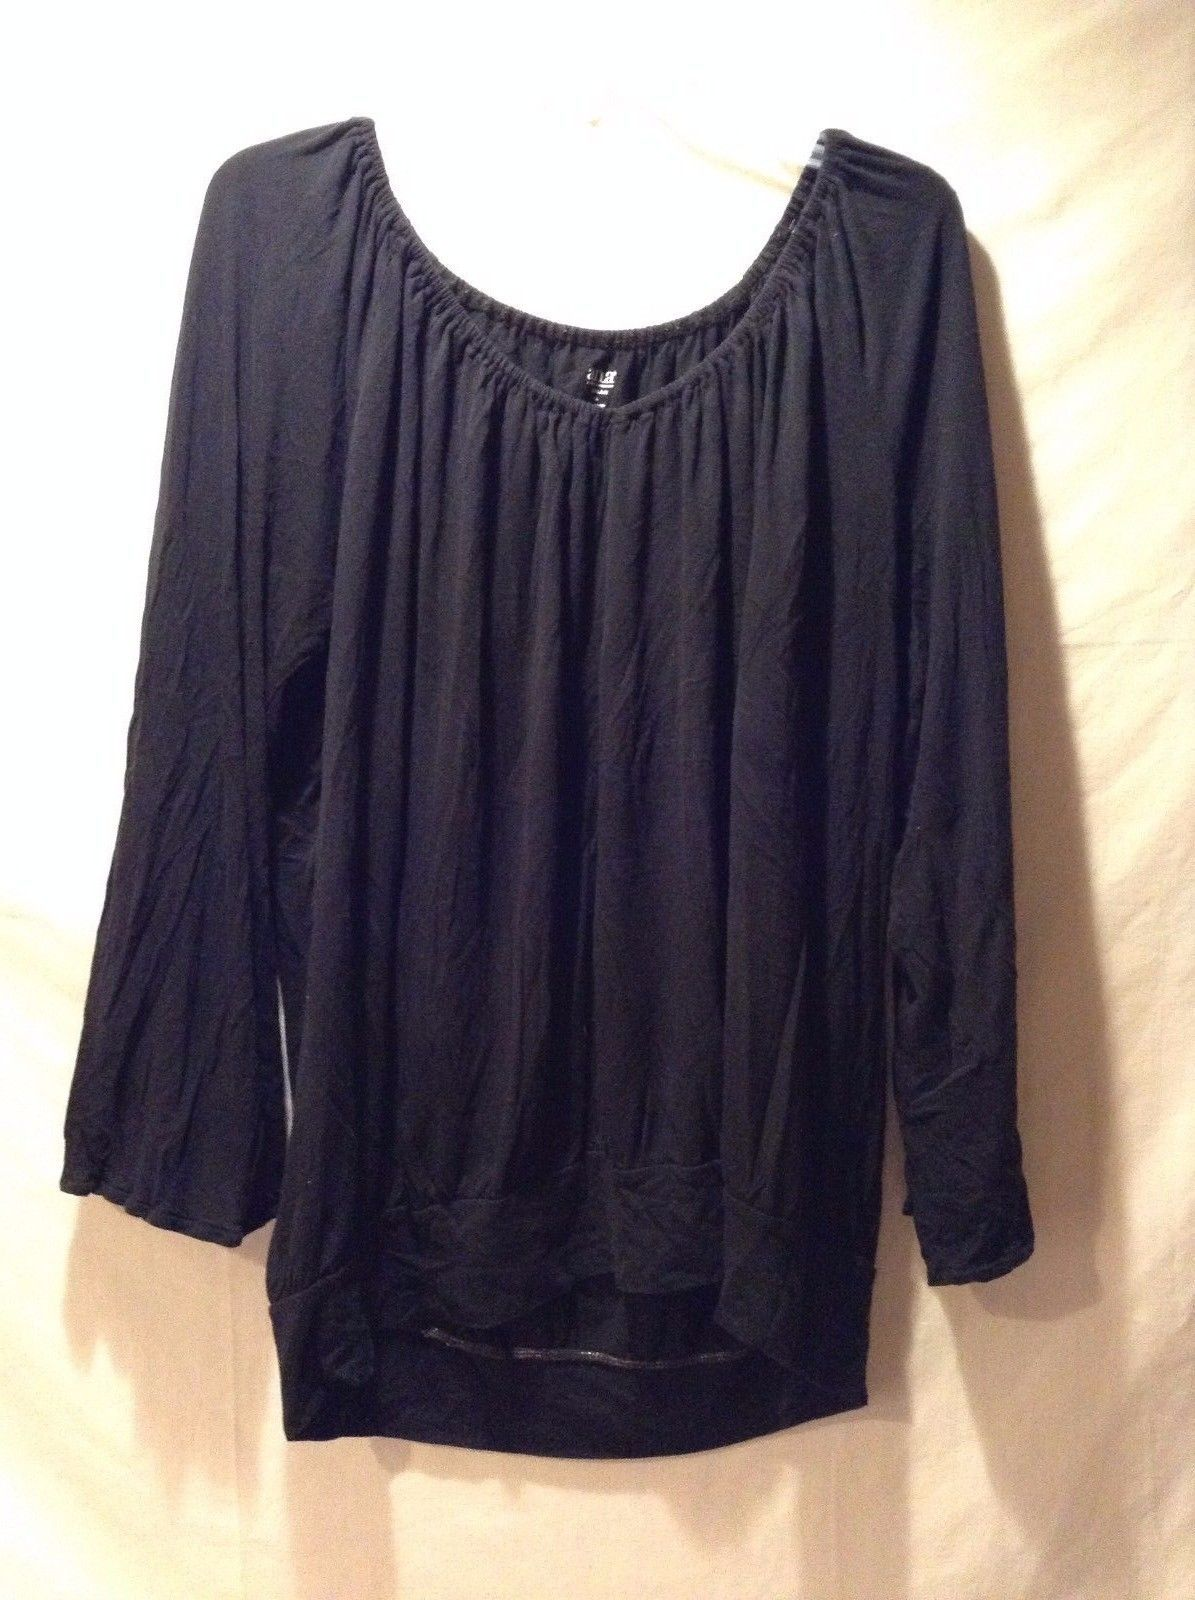 Primary image for Women's Black A.N.A. Long Sleeved Shirt Size 1XL Loose Fit Adorable